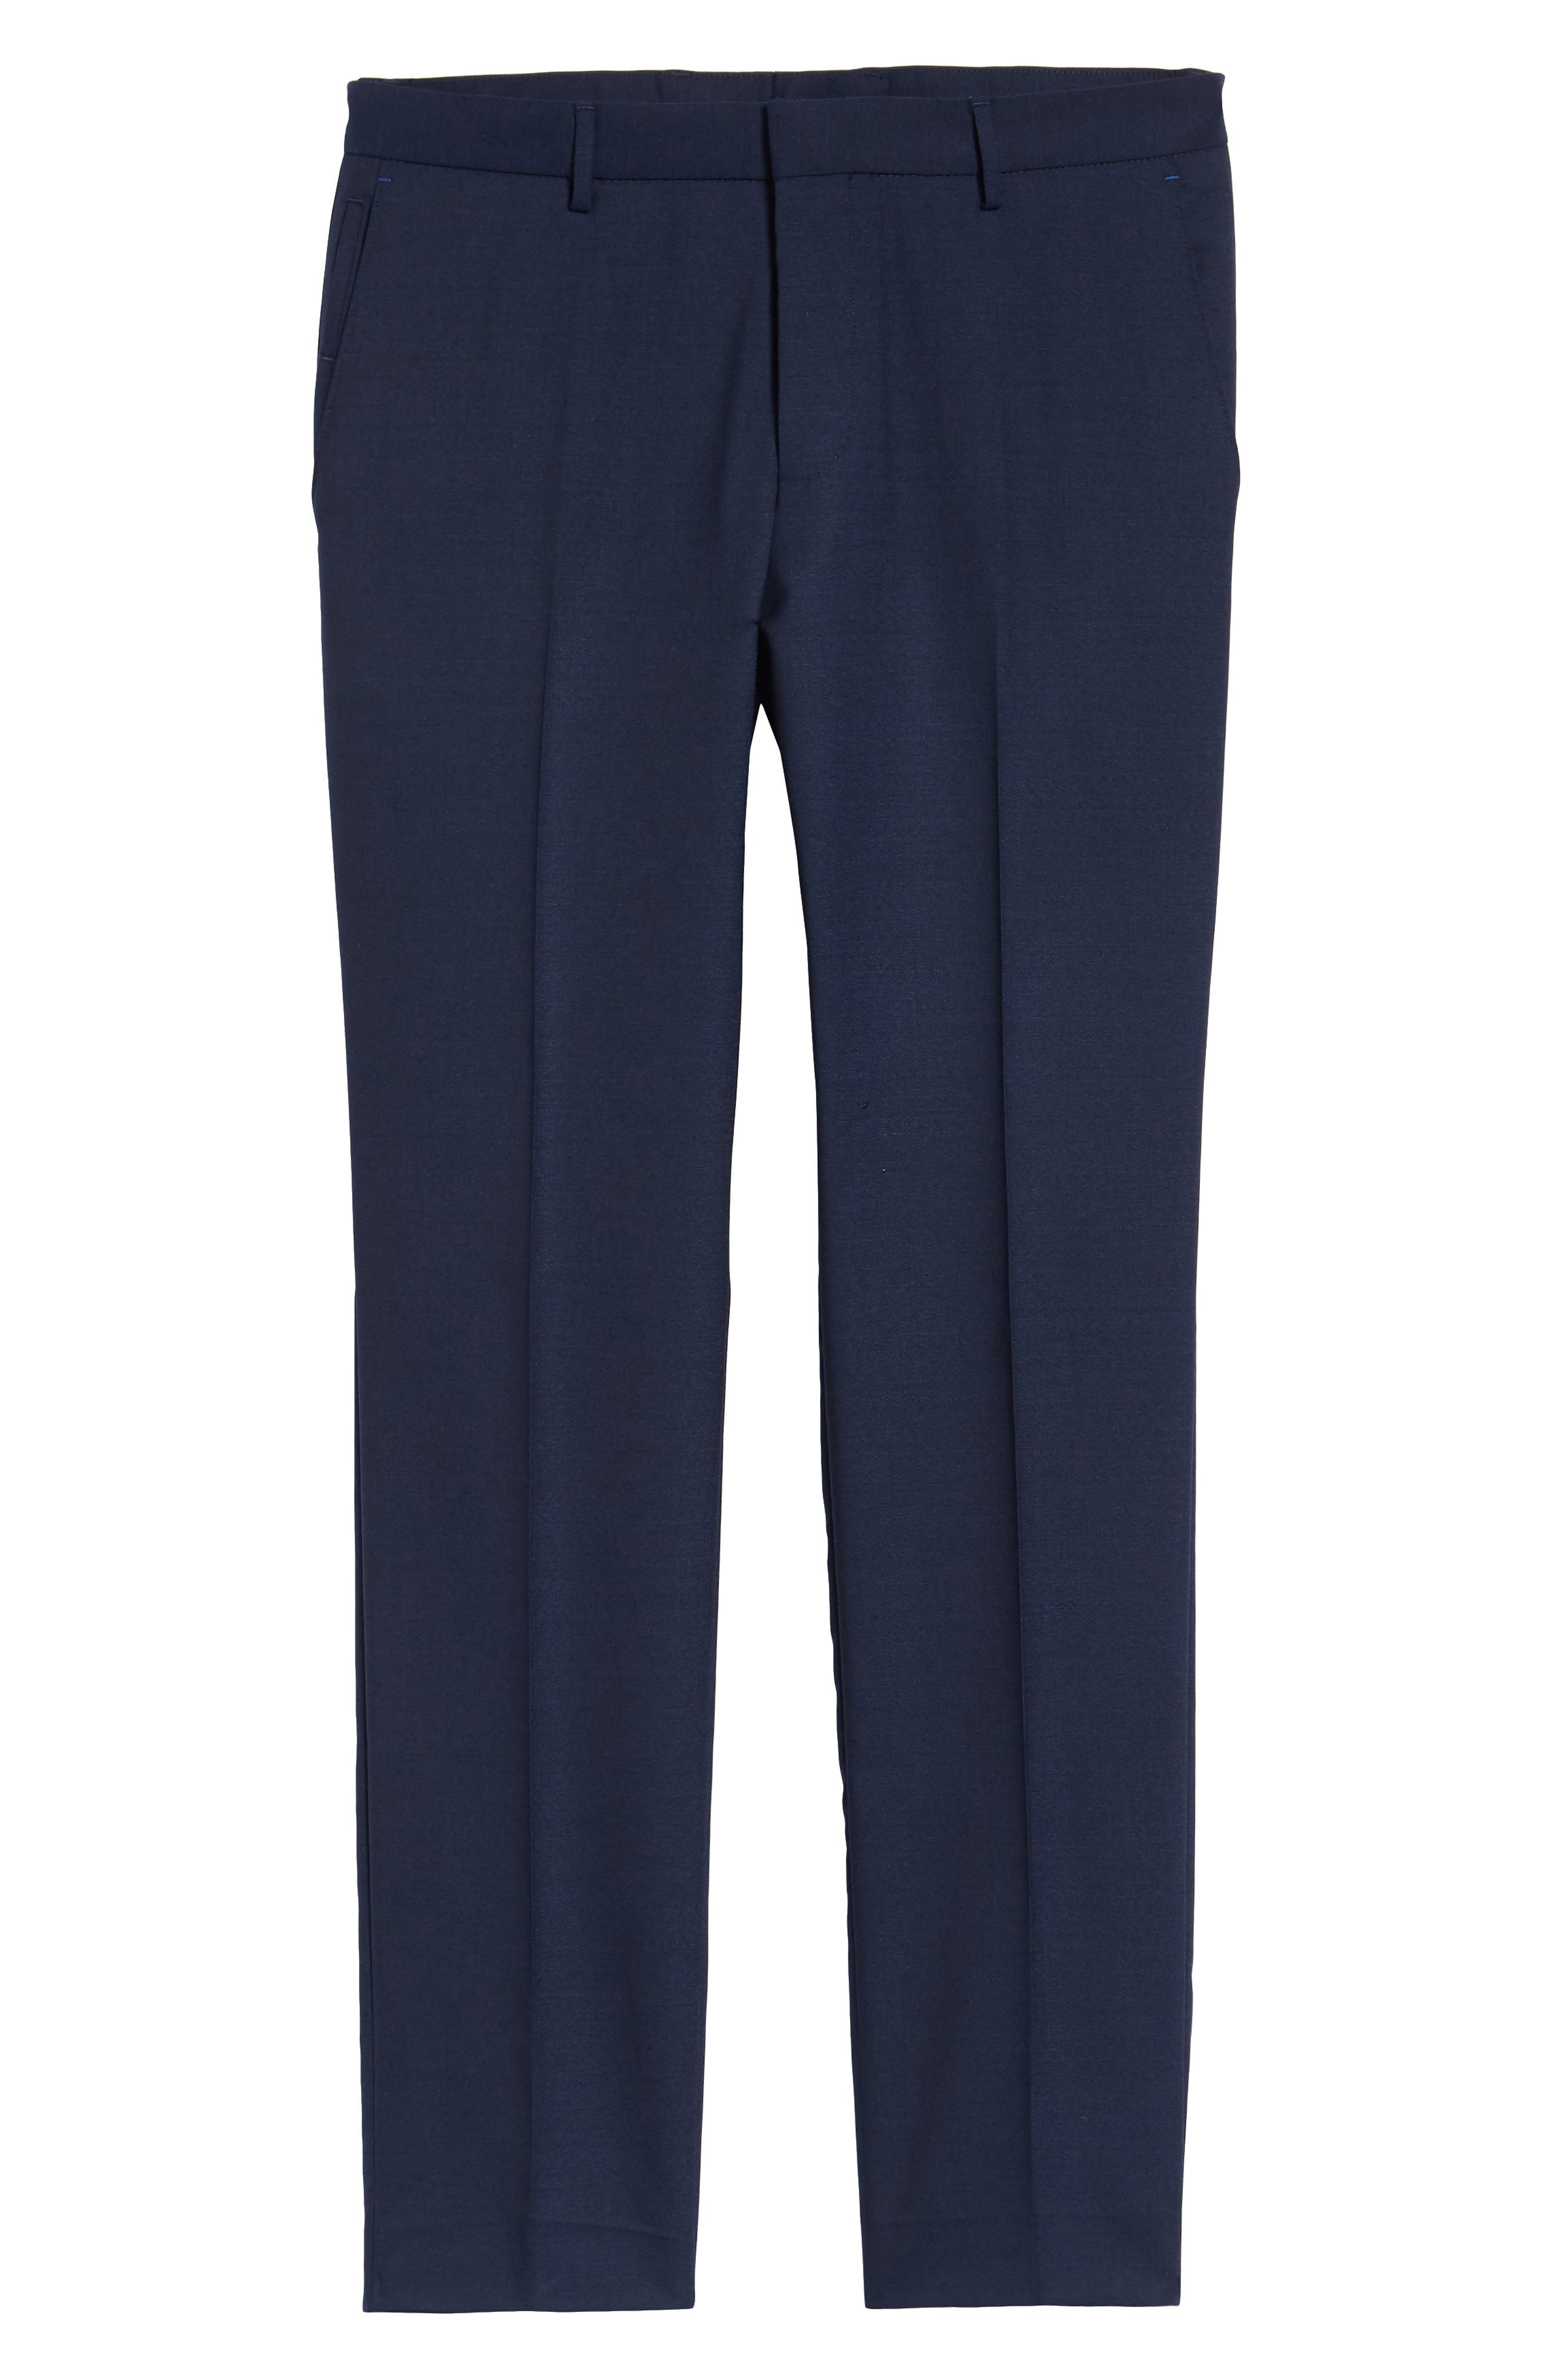 Nordstrom x BOSS Ben Flat Front Solid Wool Trousers,                             Alternate thumbnail 6, color,                             410